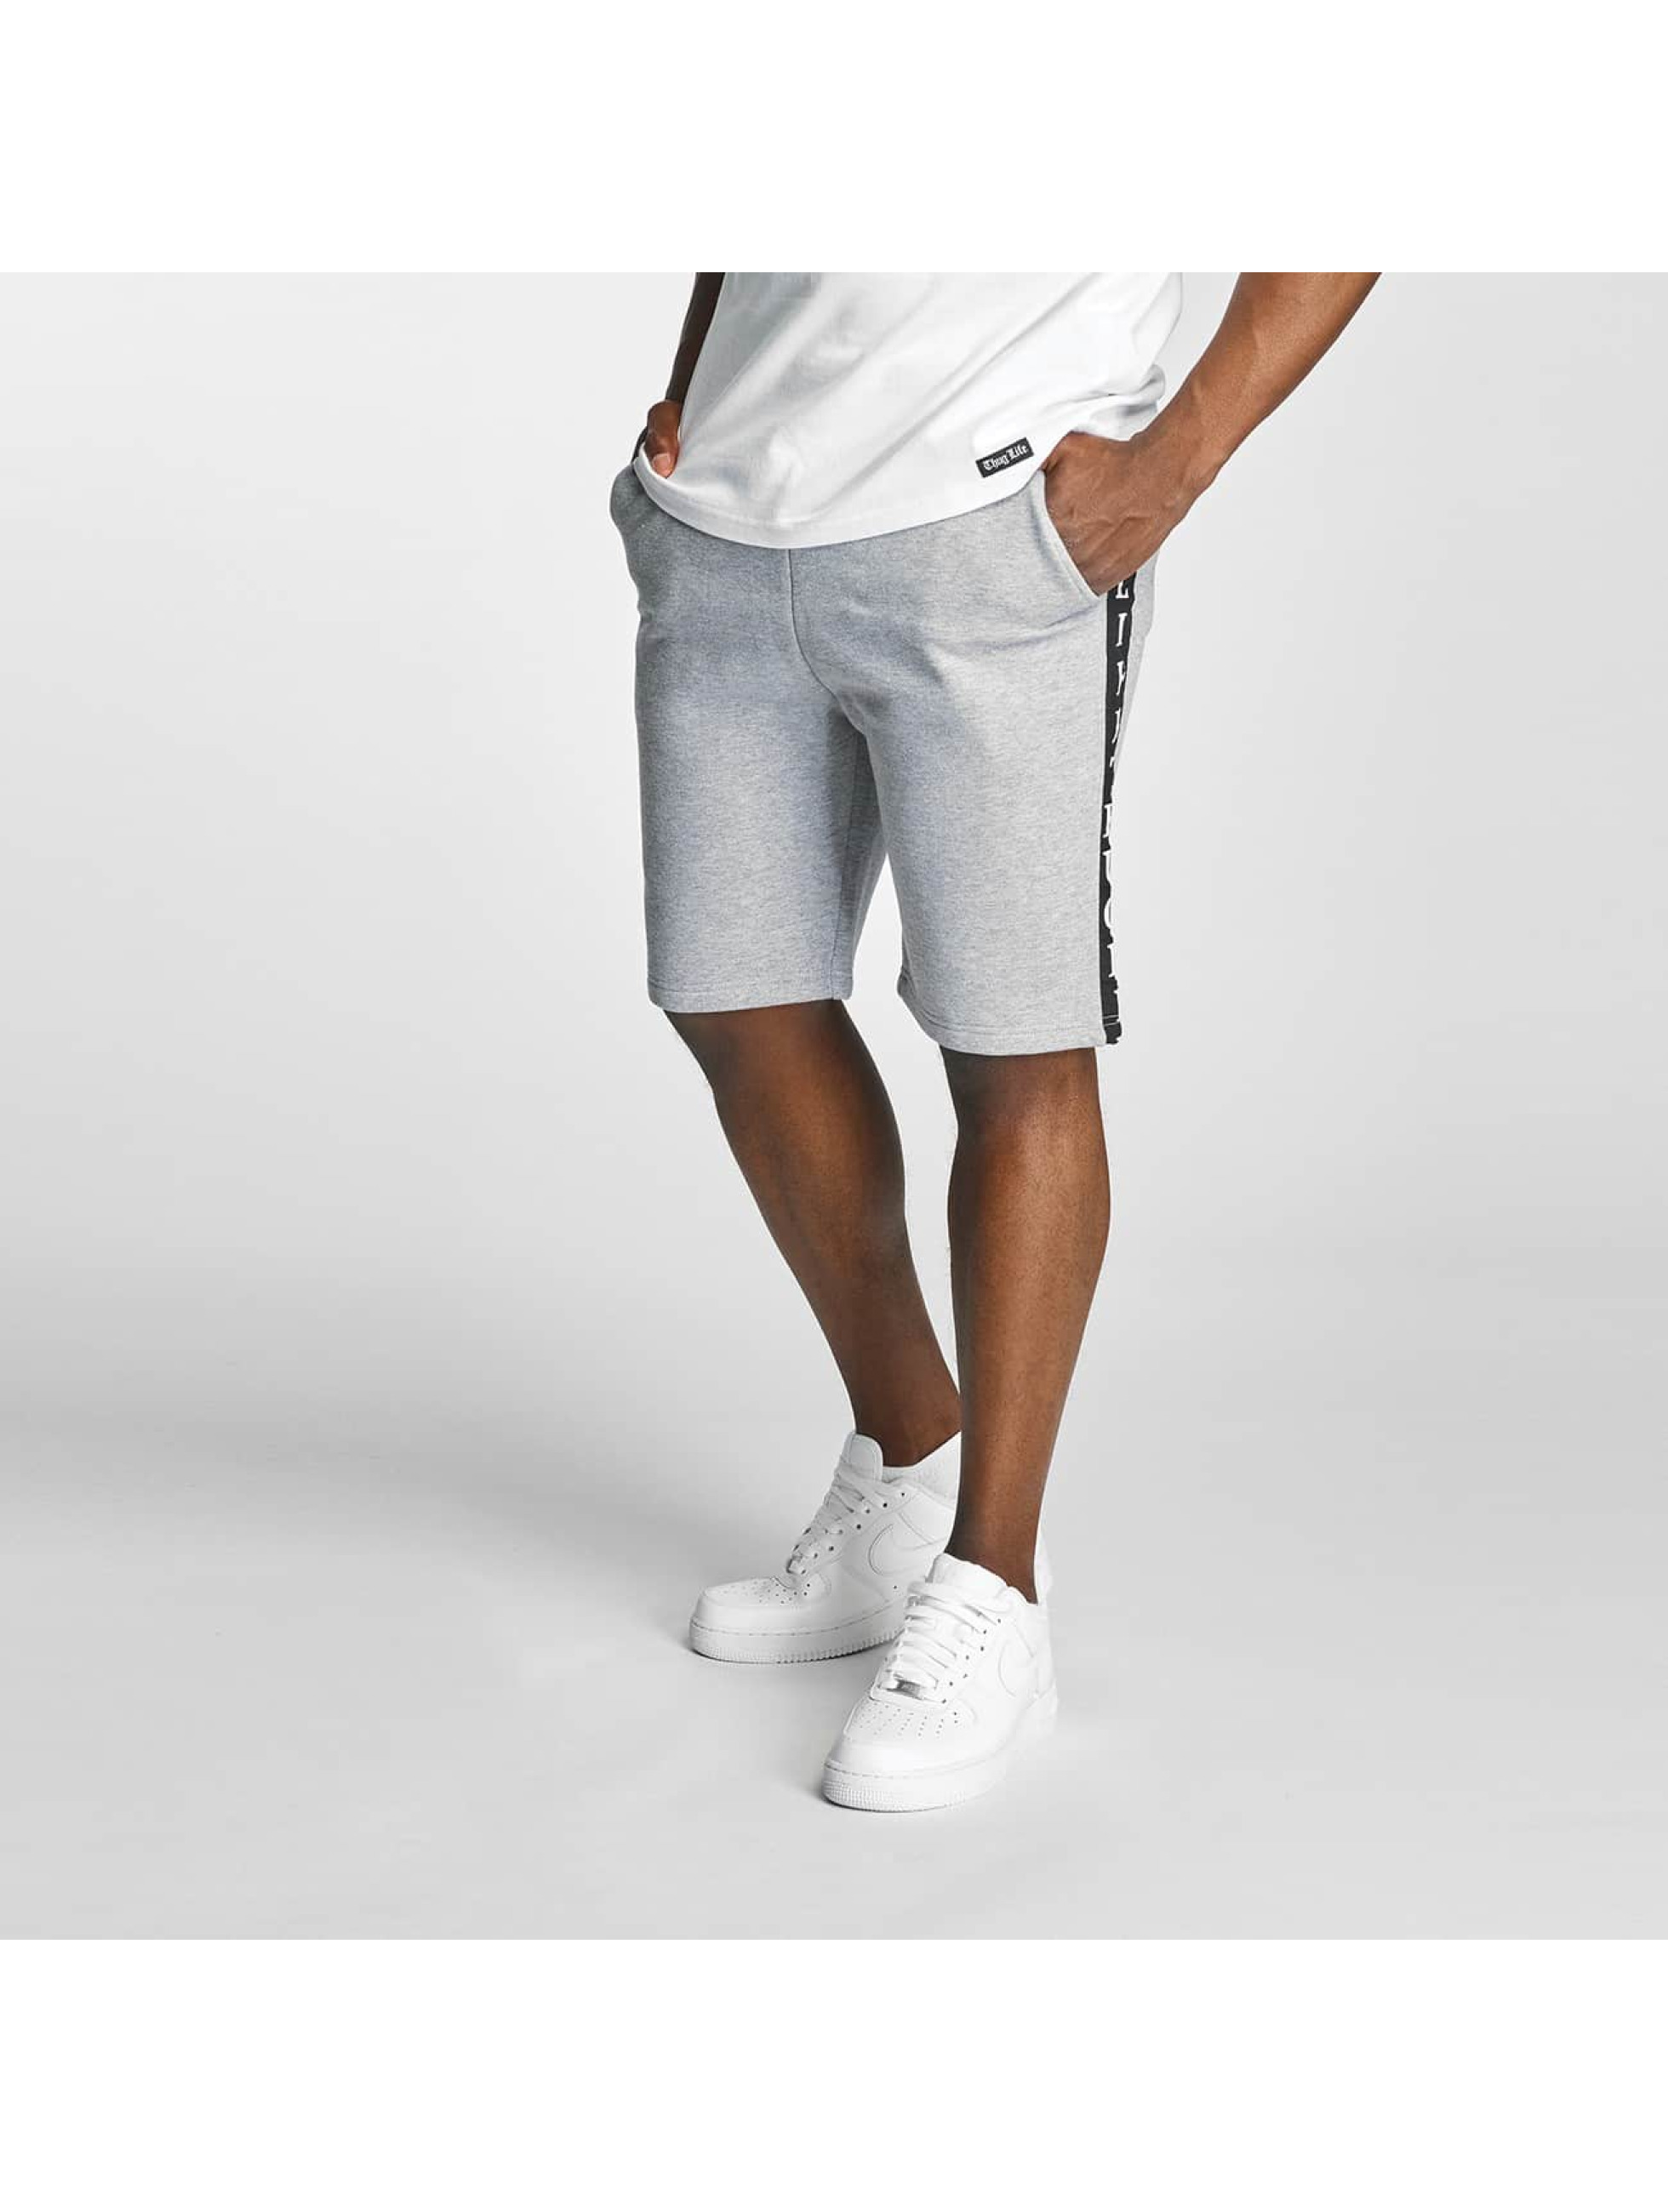 Thug Life Twostripes Shorts Grey Sale Angebote Hosena